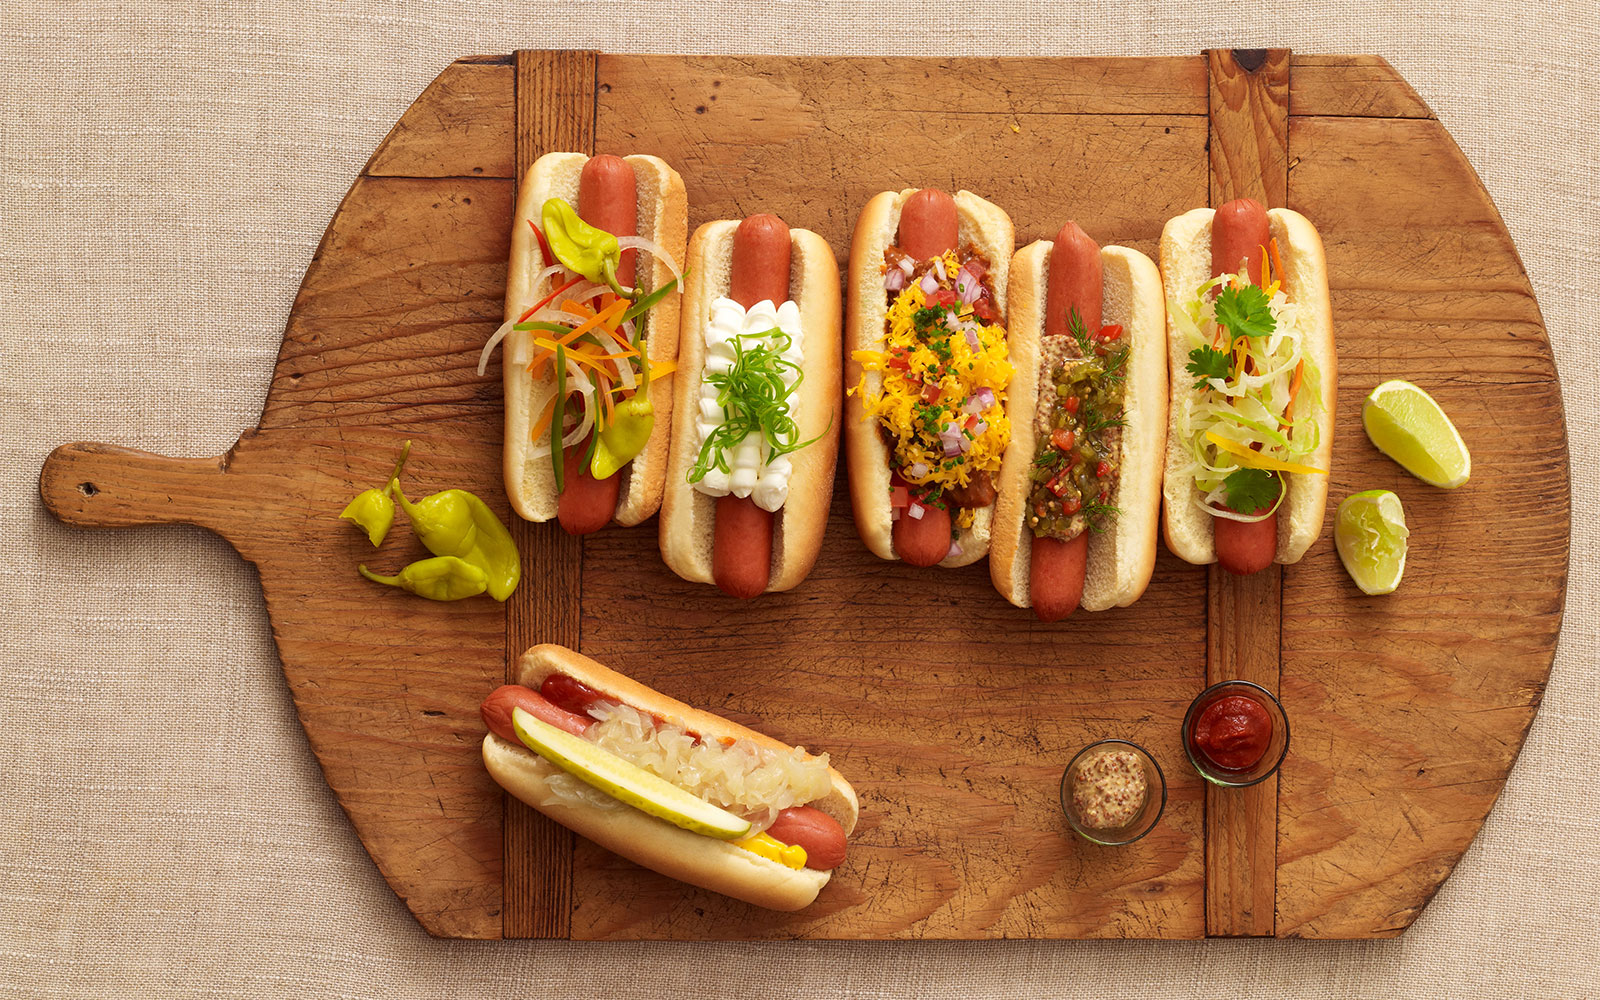 Best Hot Dog Spots in America